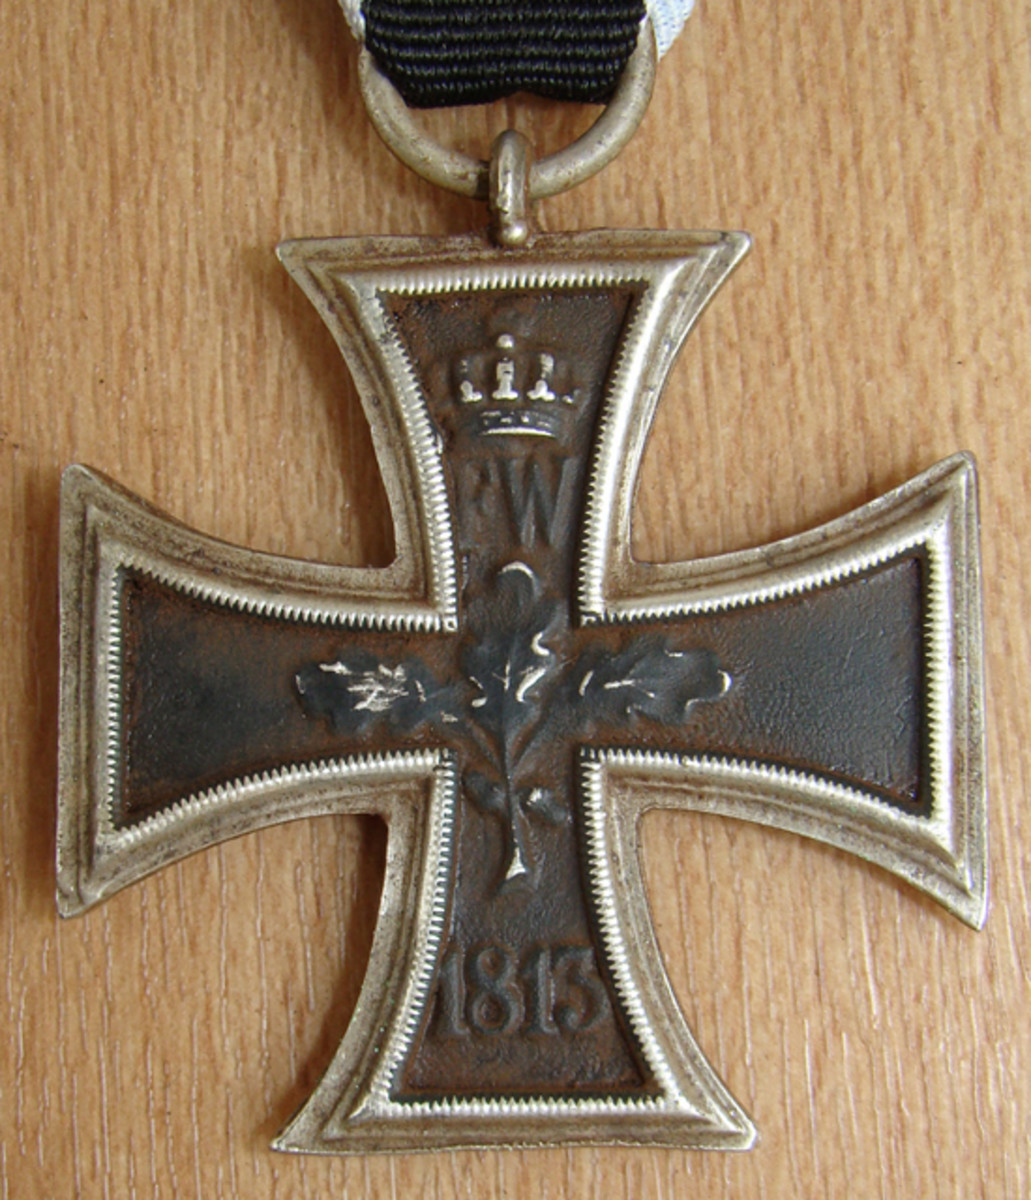 The fake crosses have been artificially aged to appear used and slightly rusted.